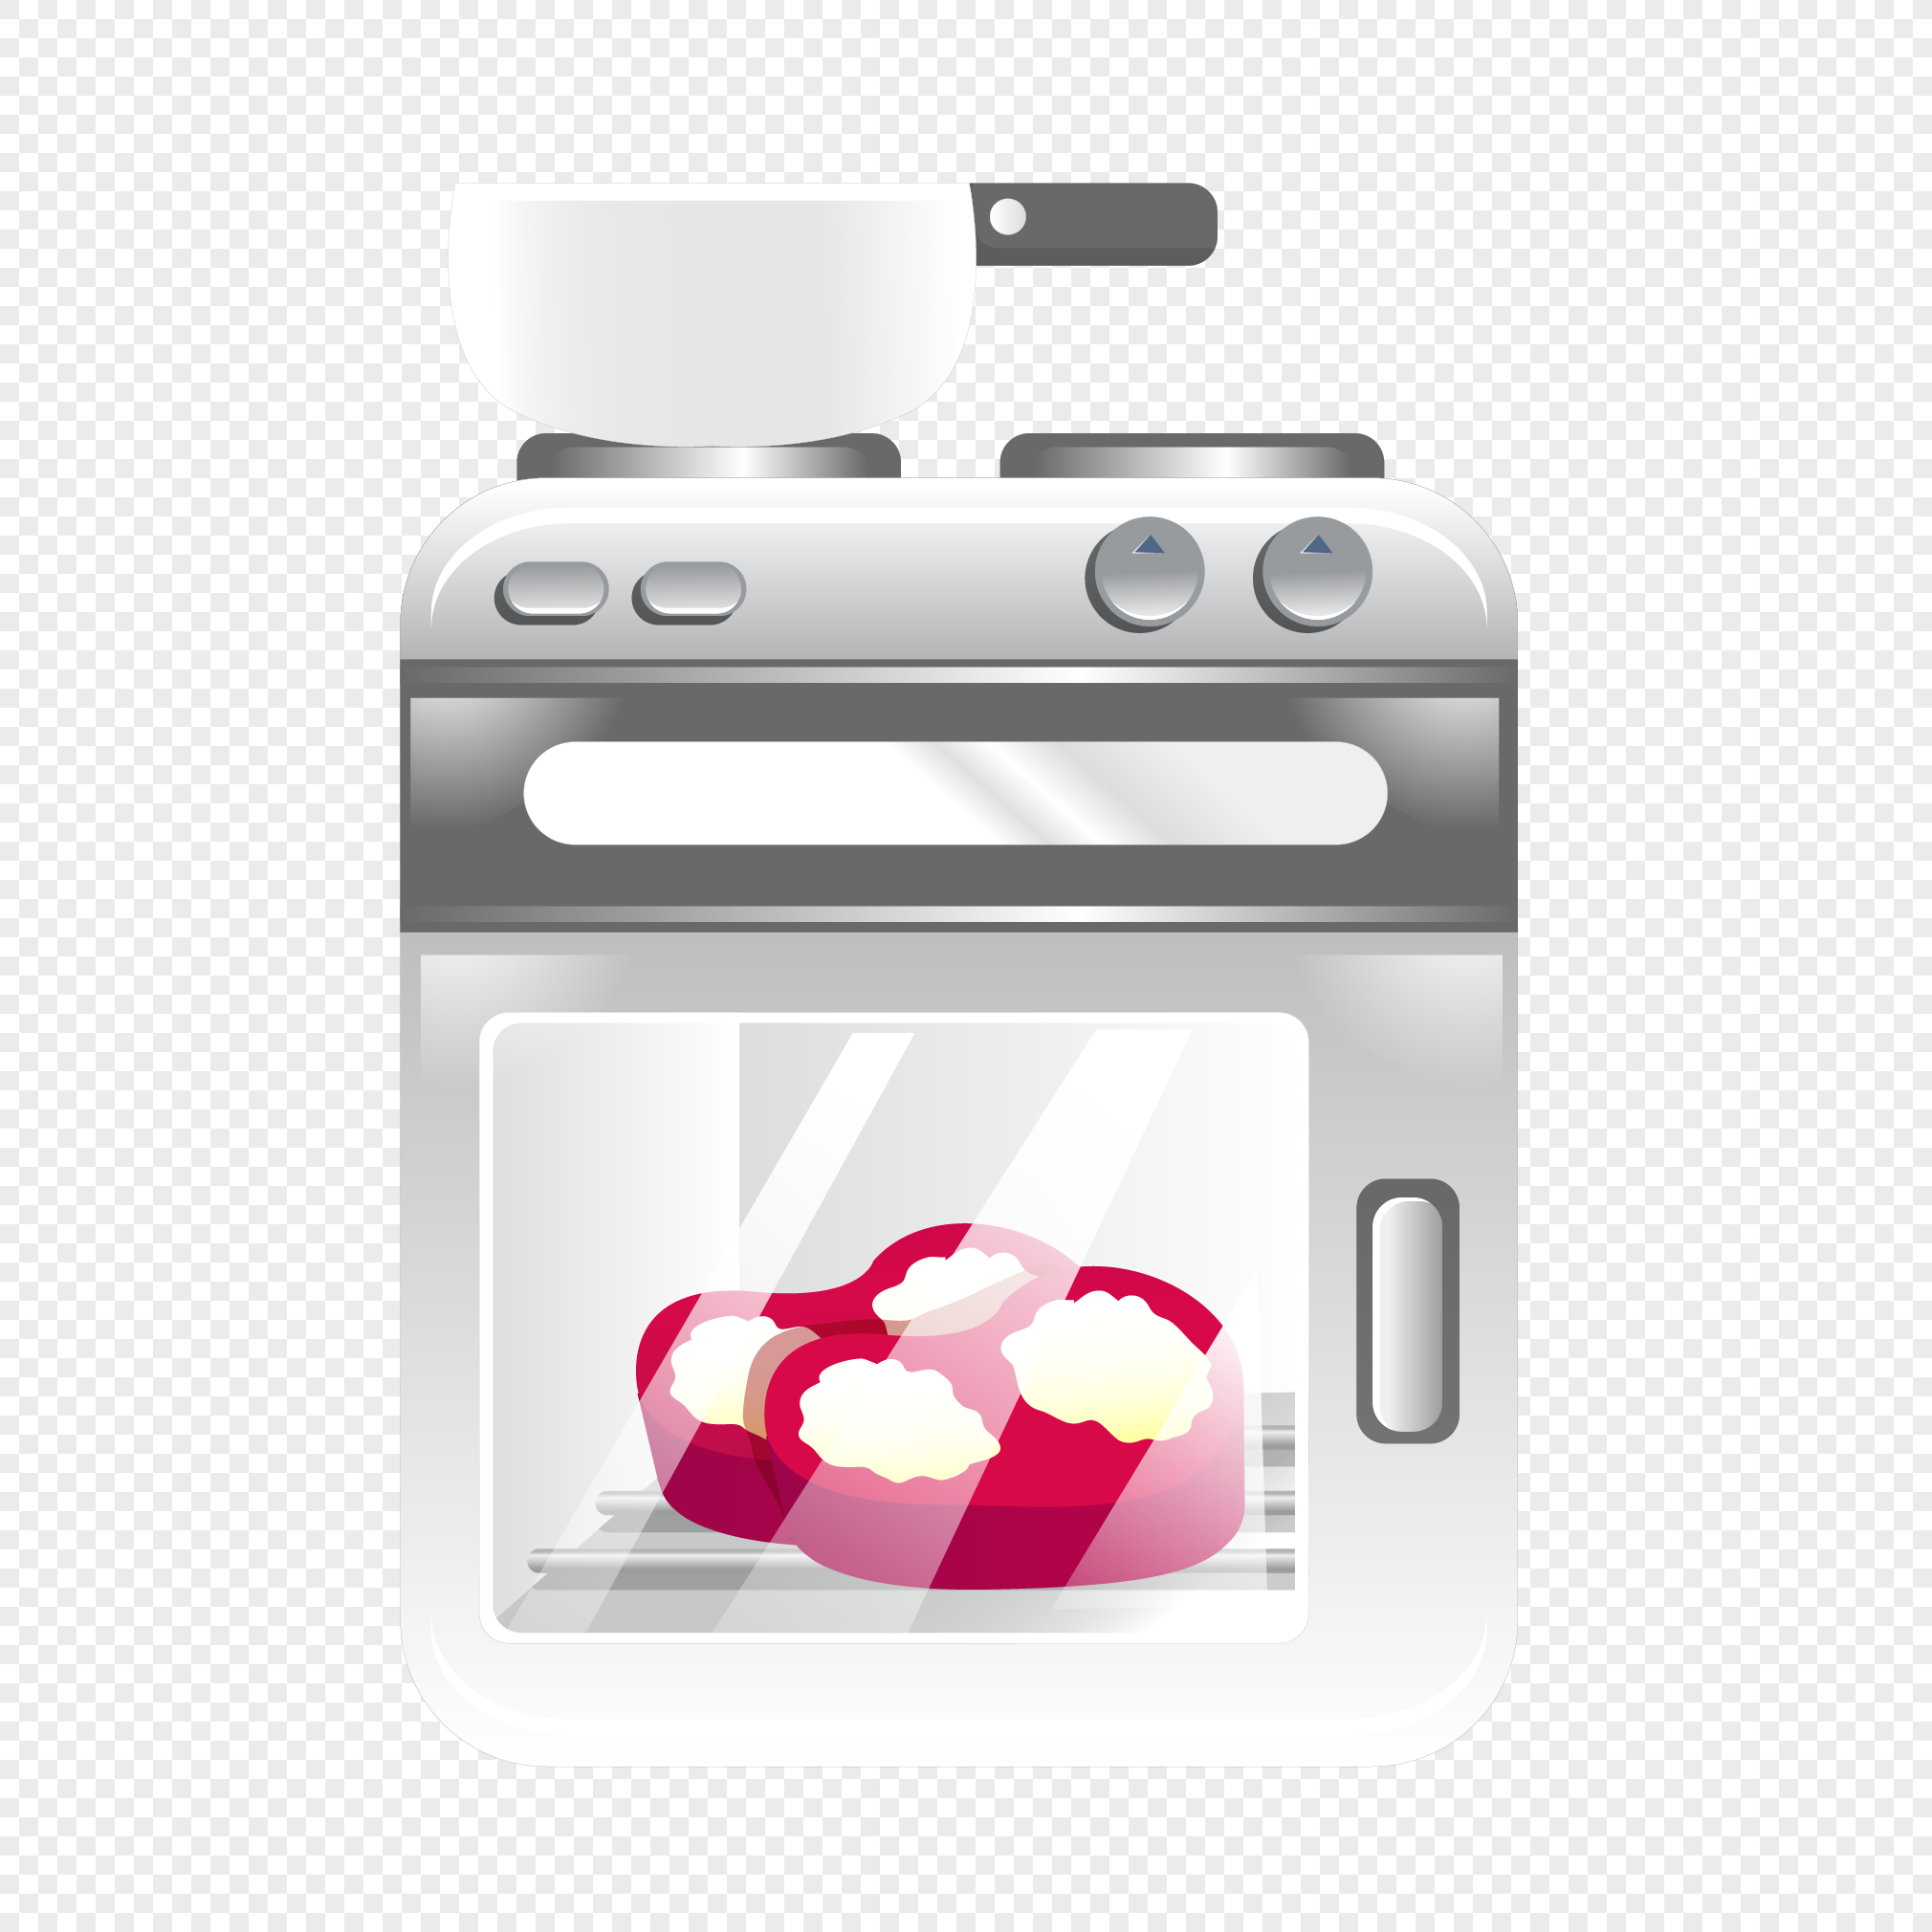 vector design of cartoon oven graphics image picture free download